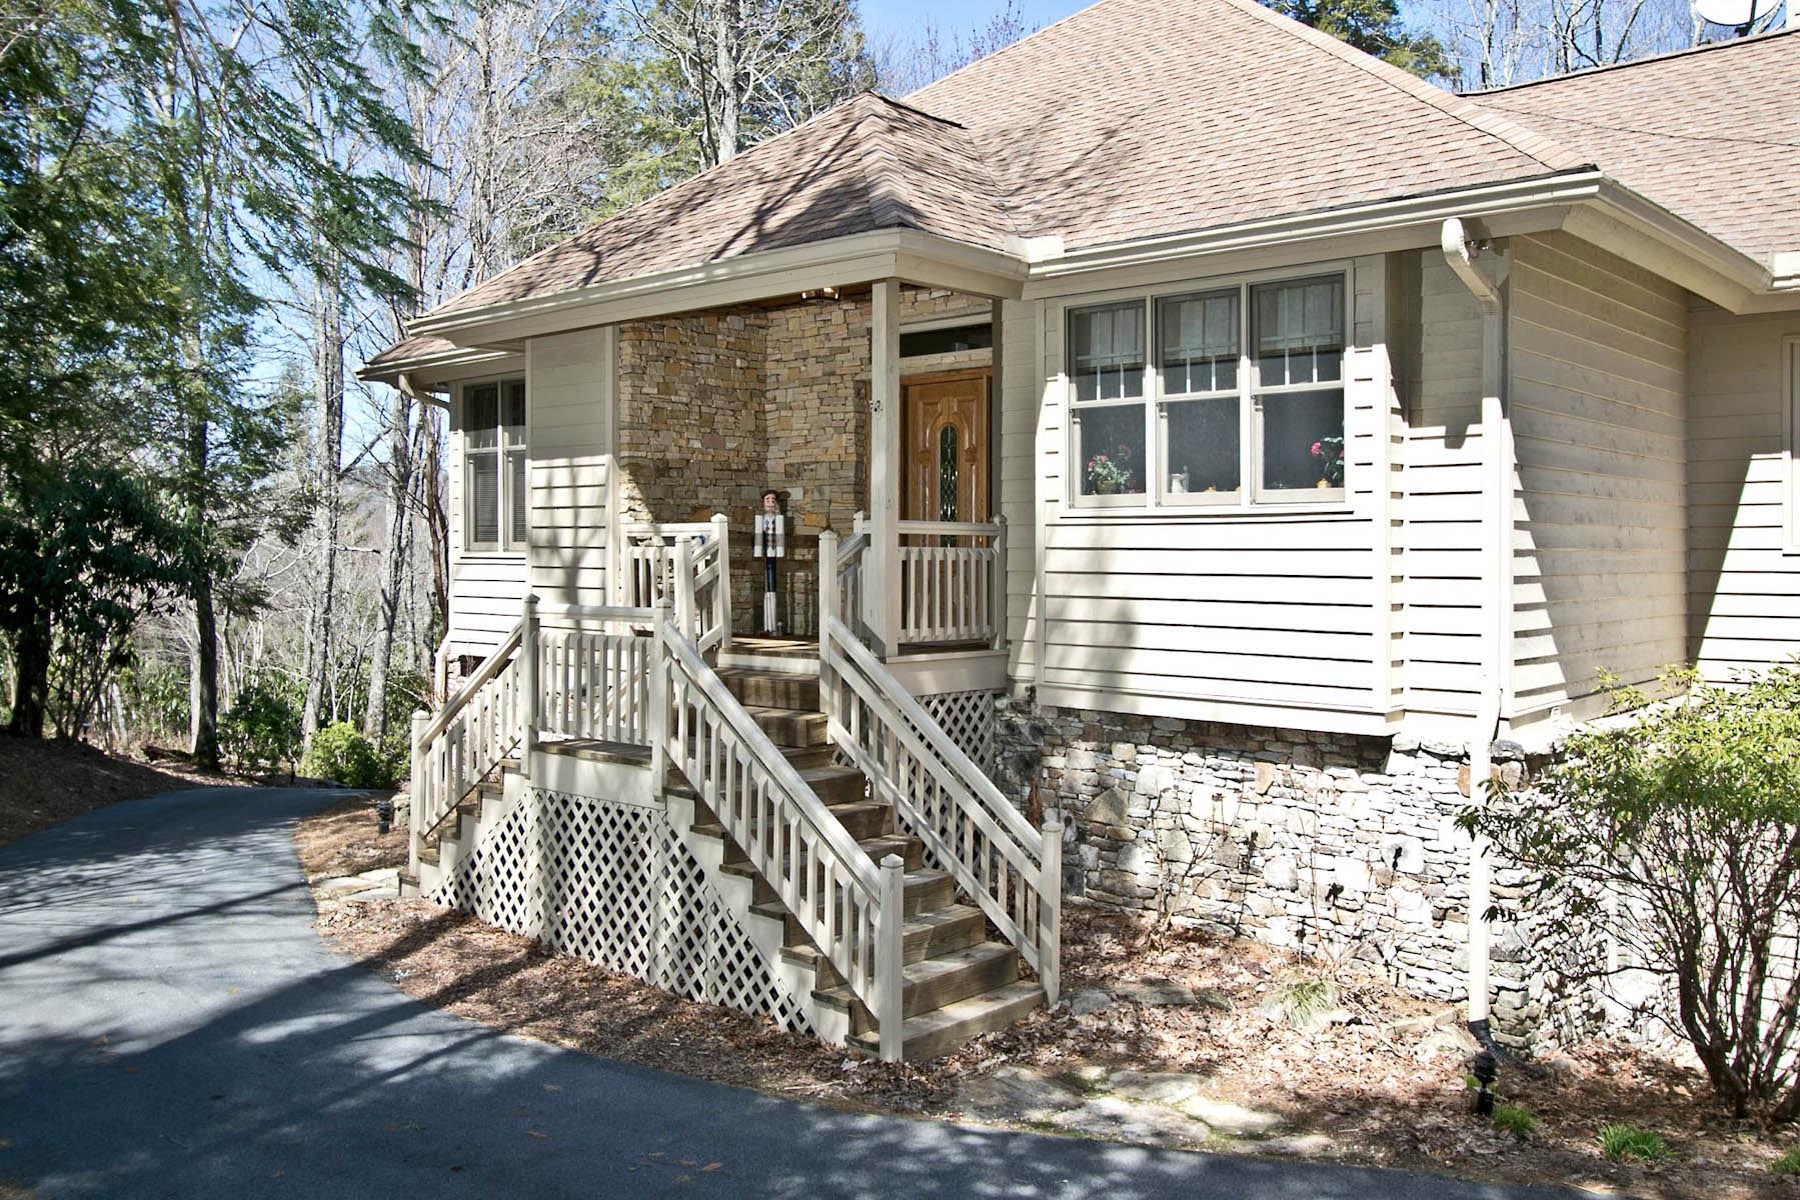 Single Family Home for Sale at 572 Garnet Rock Trail Highlands, North Carolina, 28741 United States